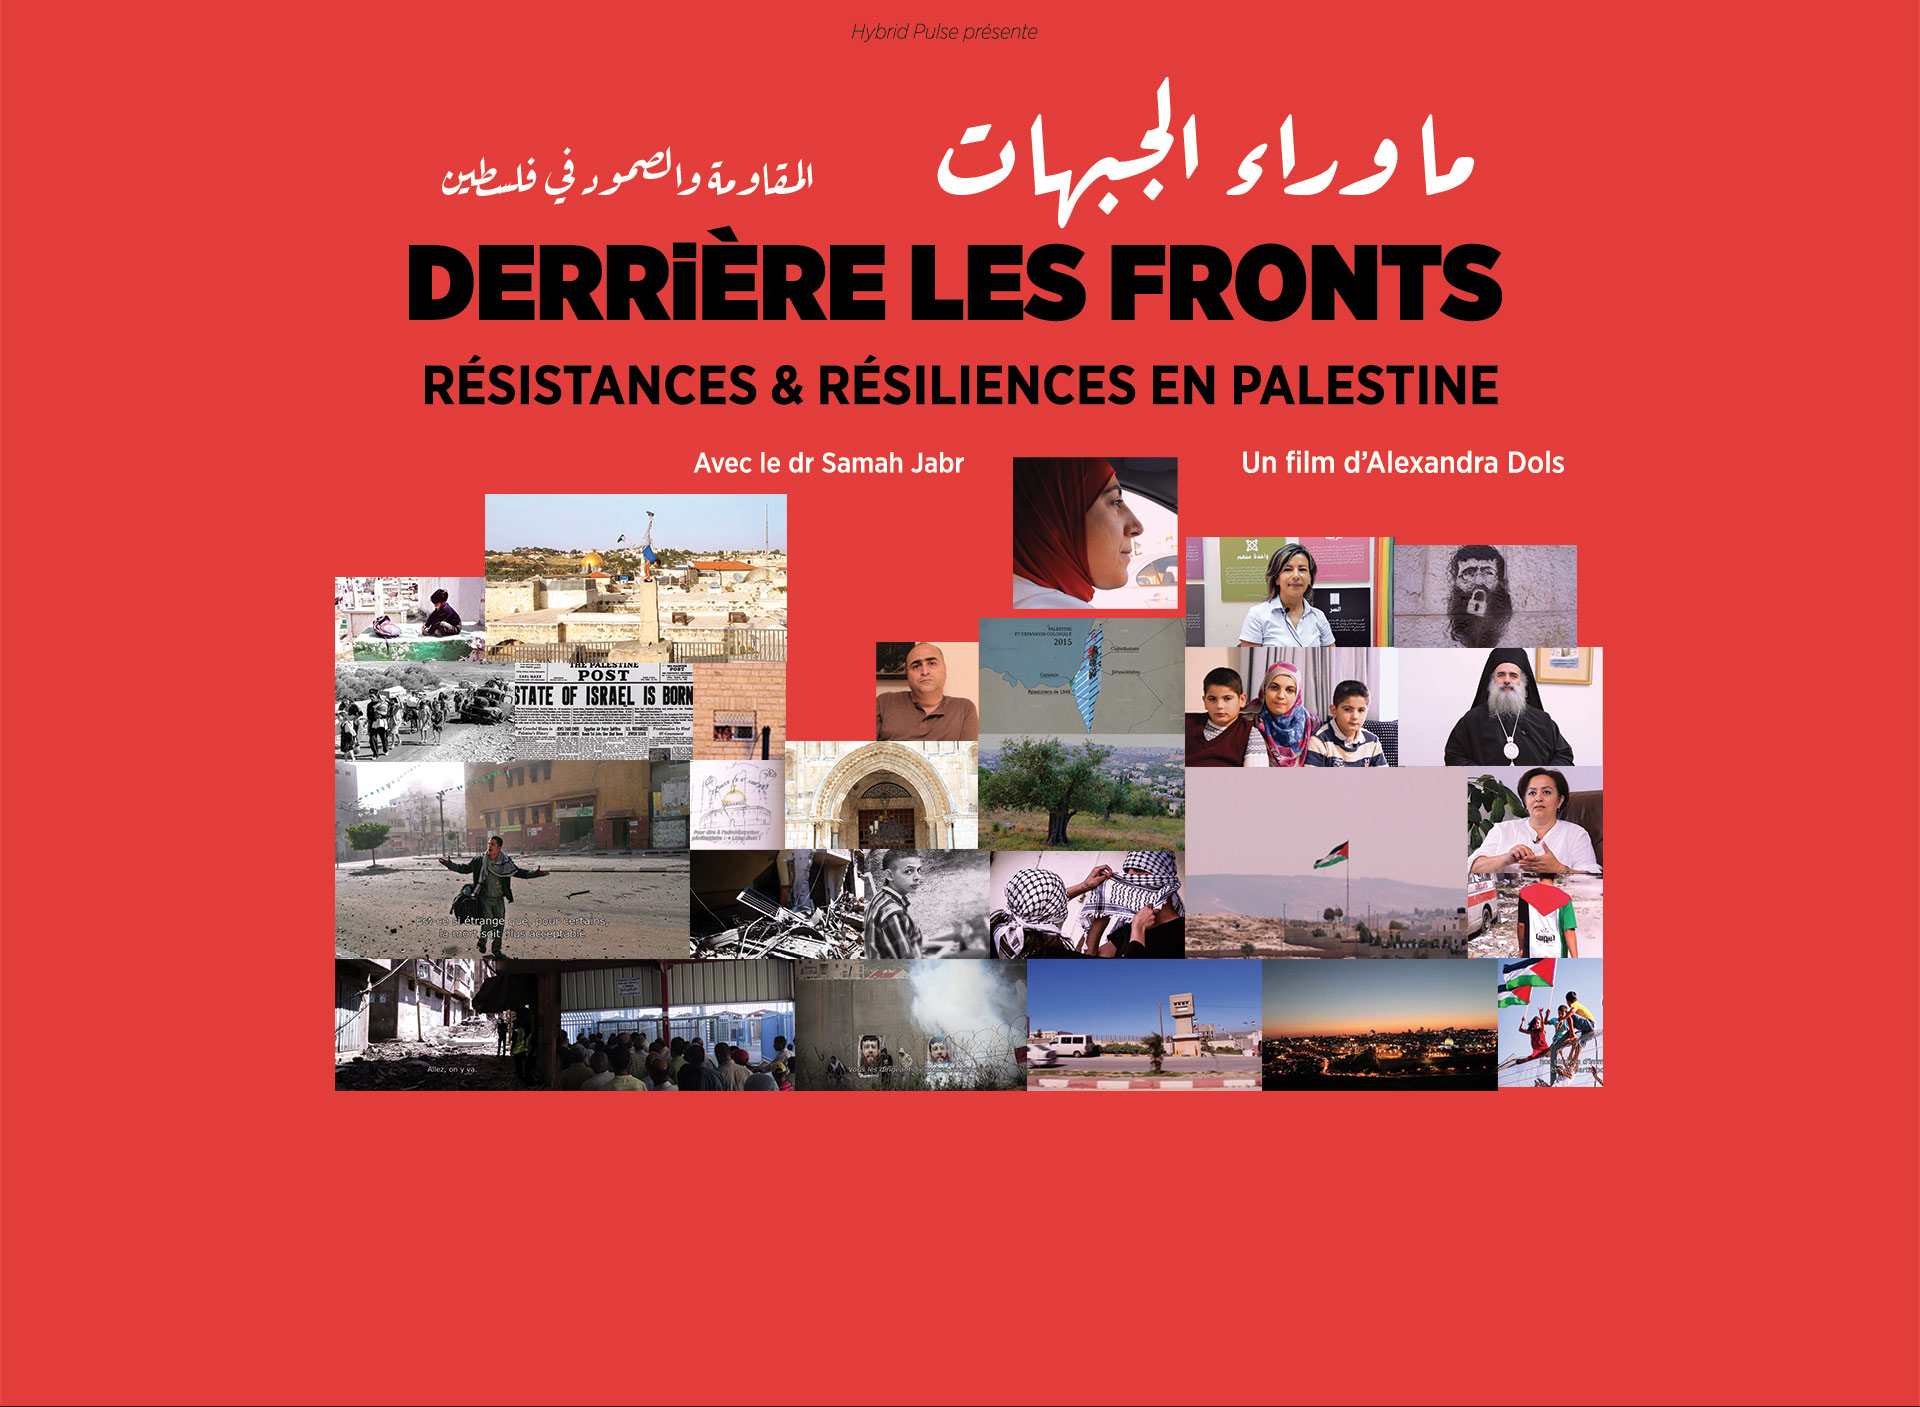 derrierelesfronts_web_h